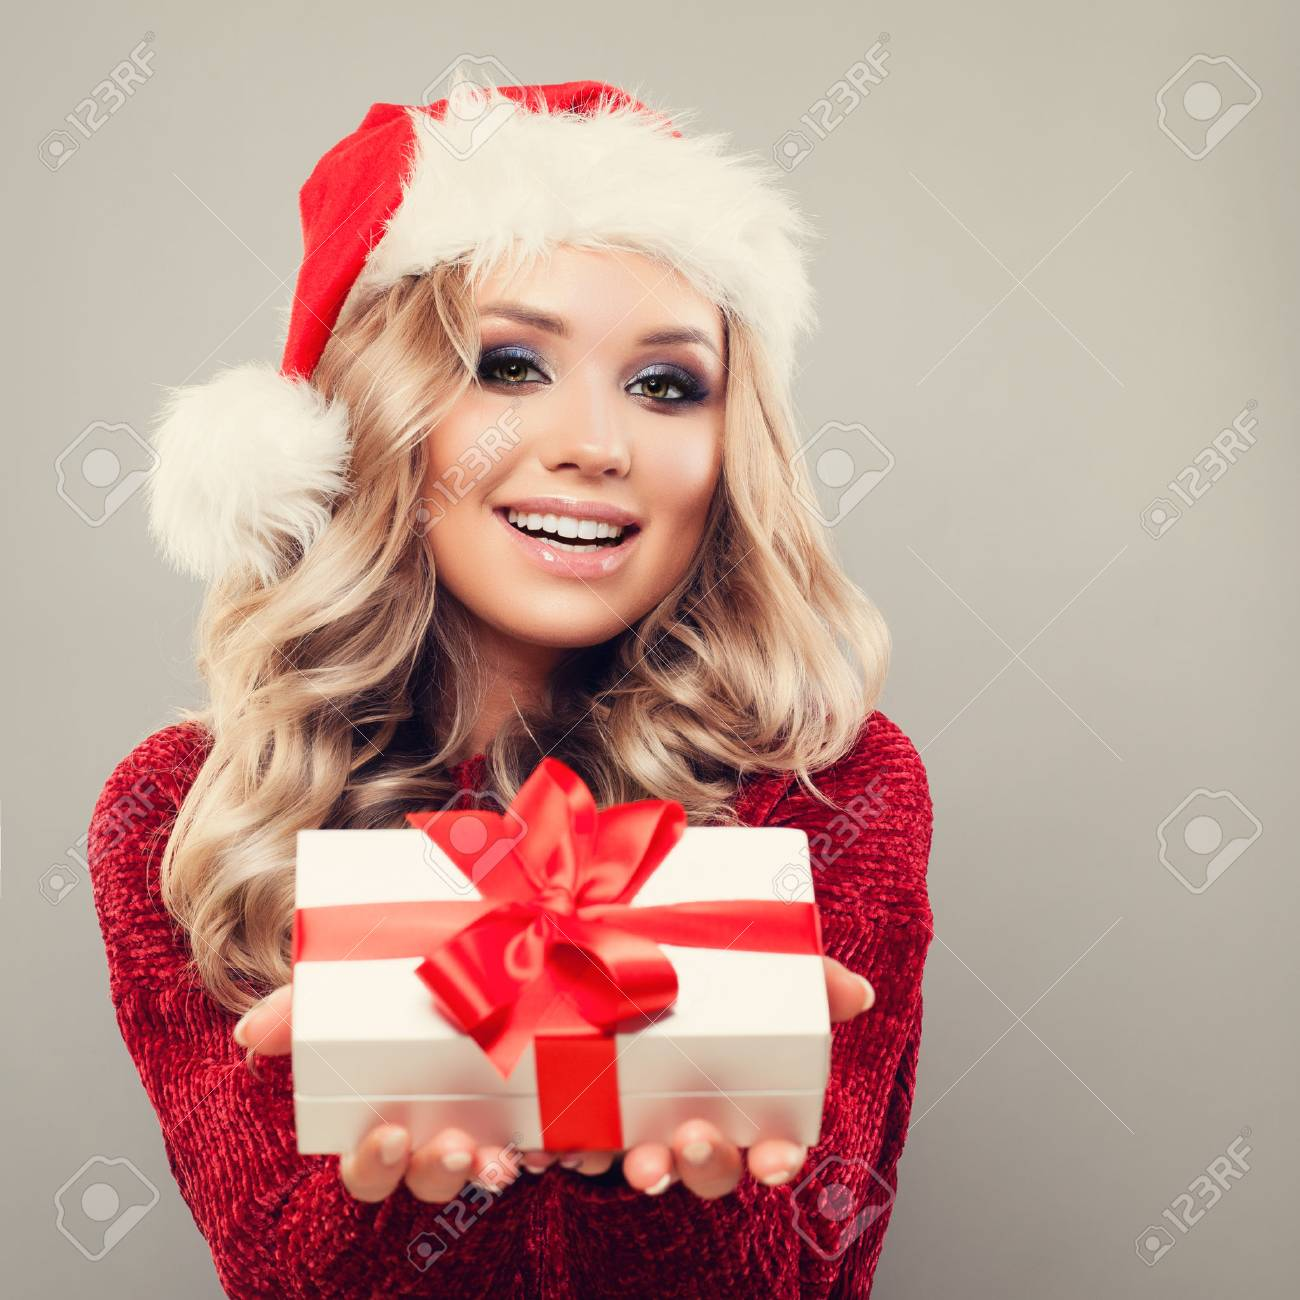 e6f1ae30472bd Smiling Model Woman wearing Santa Hat and Holding Christmas Gift on  Background with Copy space.